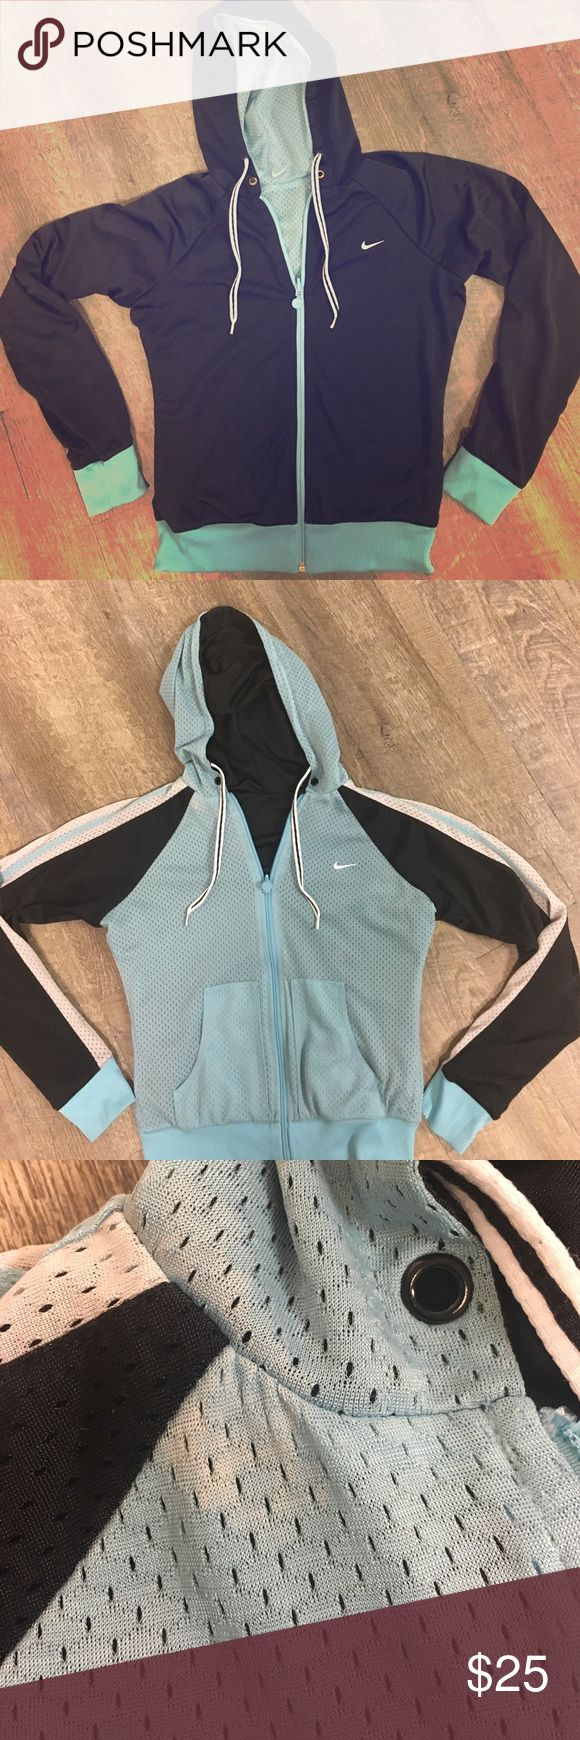 1000 Ideas About Nike Jacket On Pinterest Sport Outfits